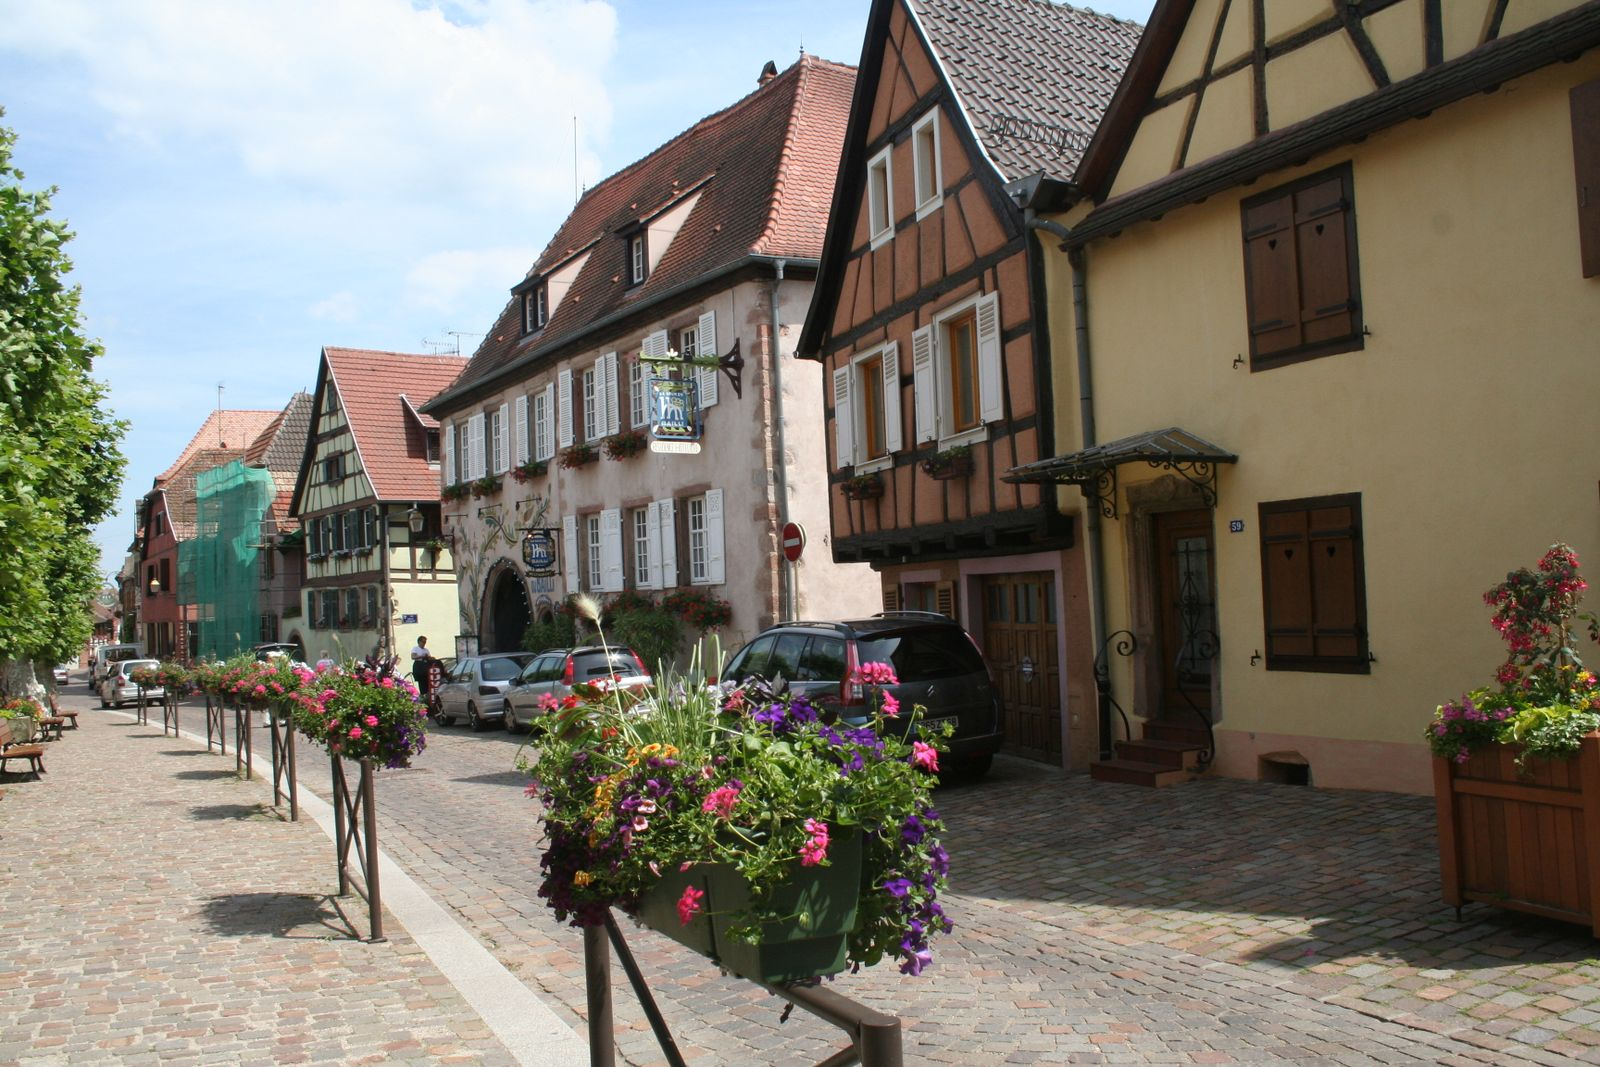 Half-timbered buildings in Alsace